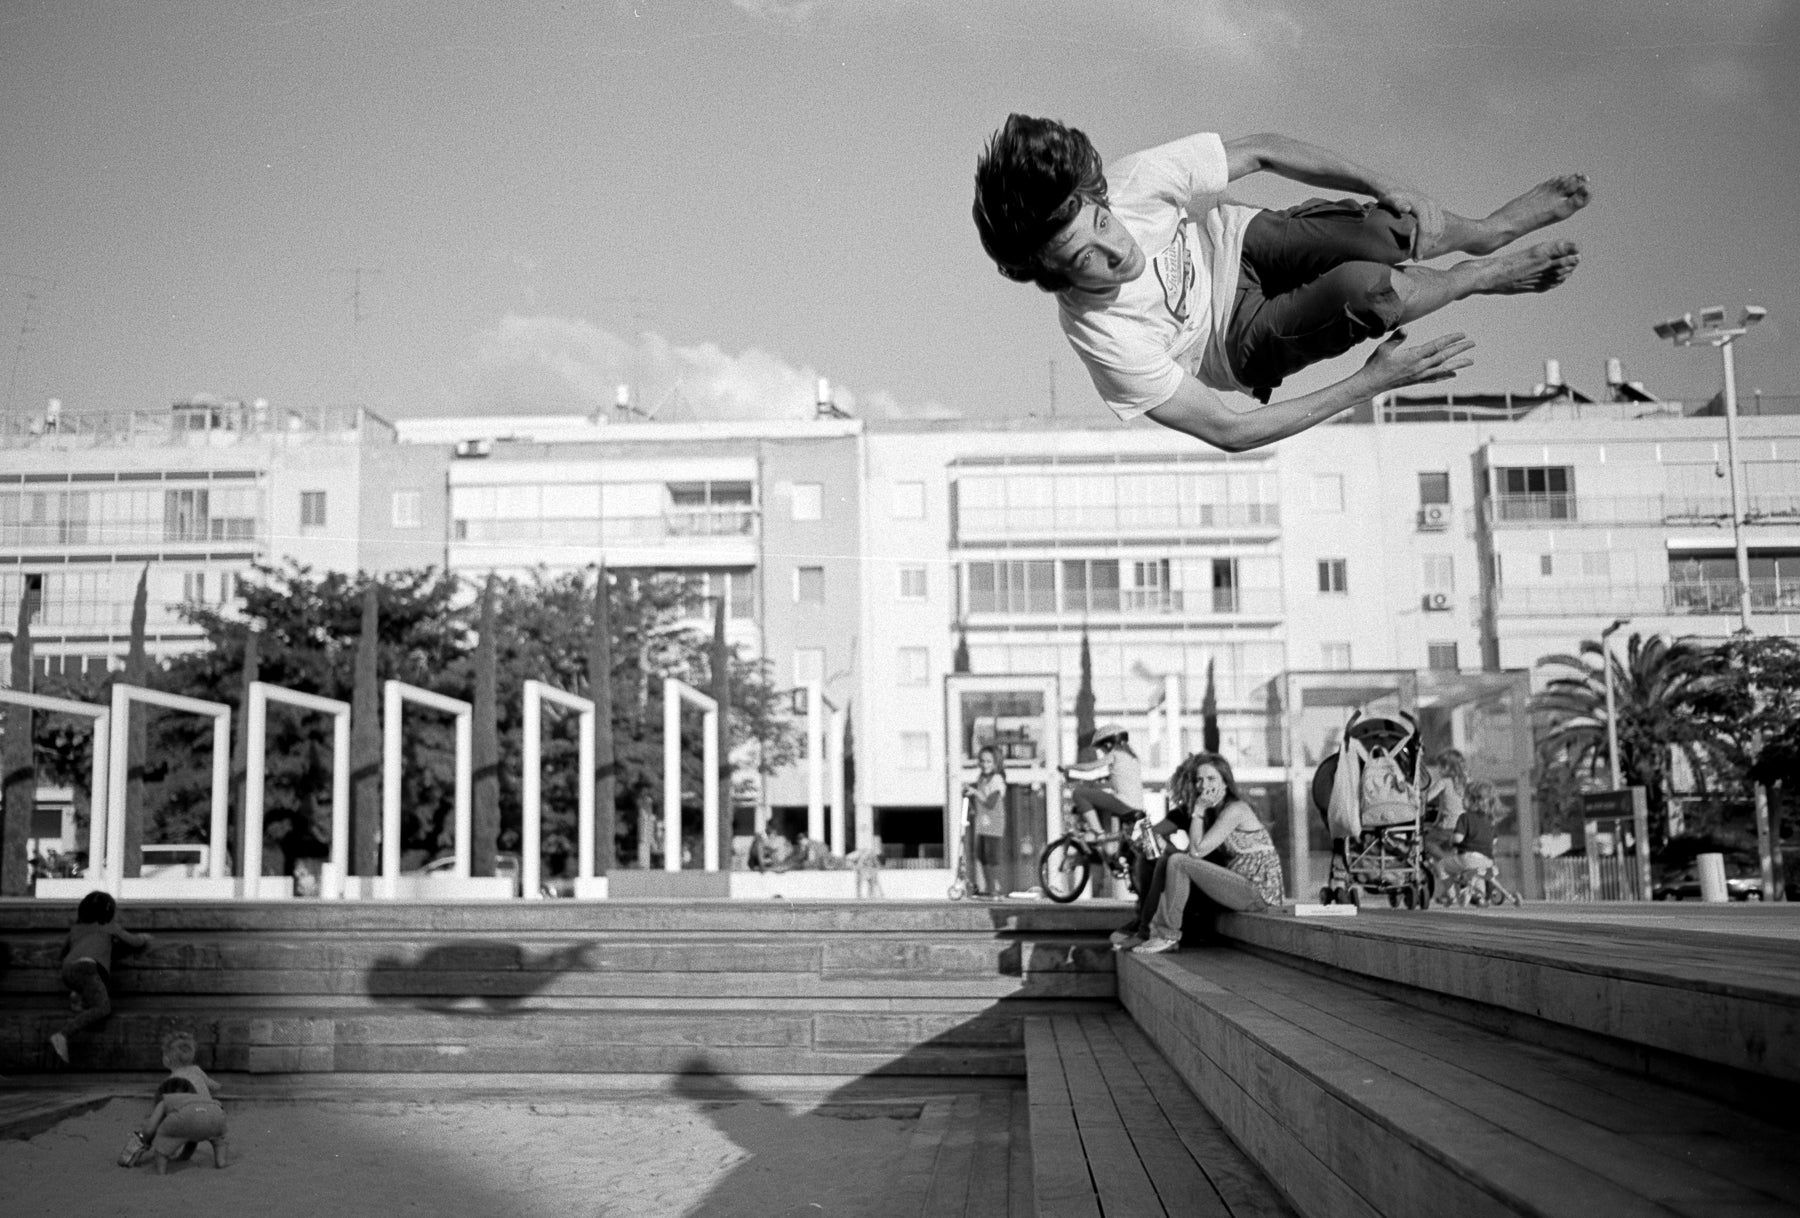 Photo taken on Fuji Acros B&W 35mm film - man doing acrobatics